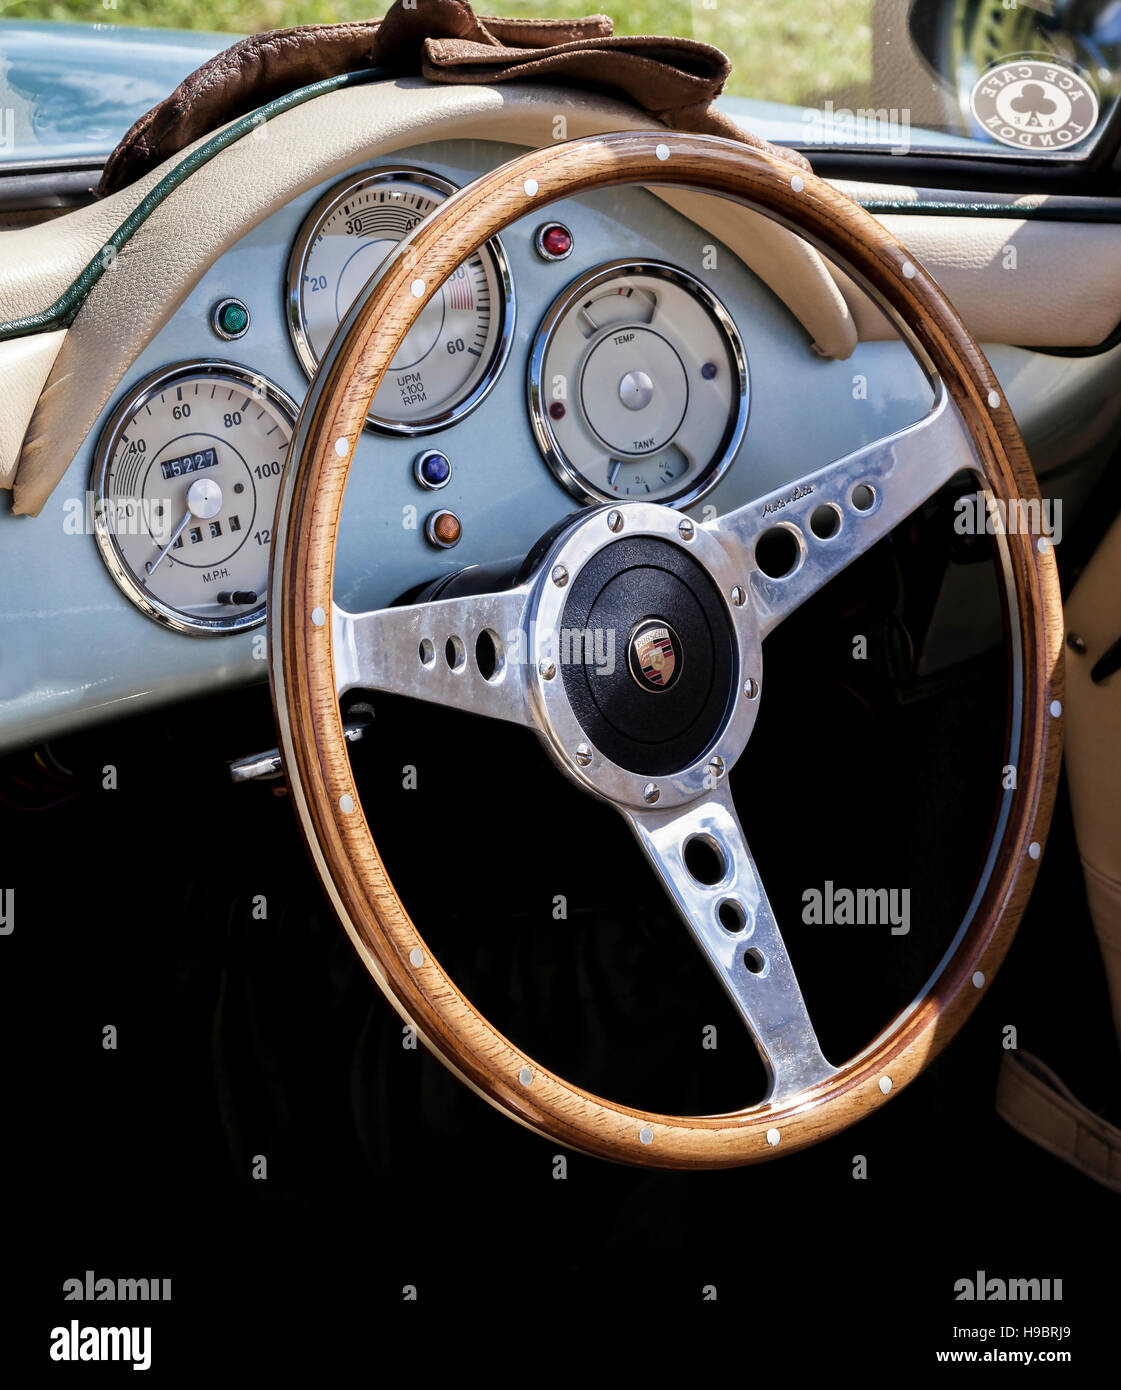 Porsche Speedster Interior Stock Photo 126264497